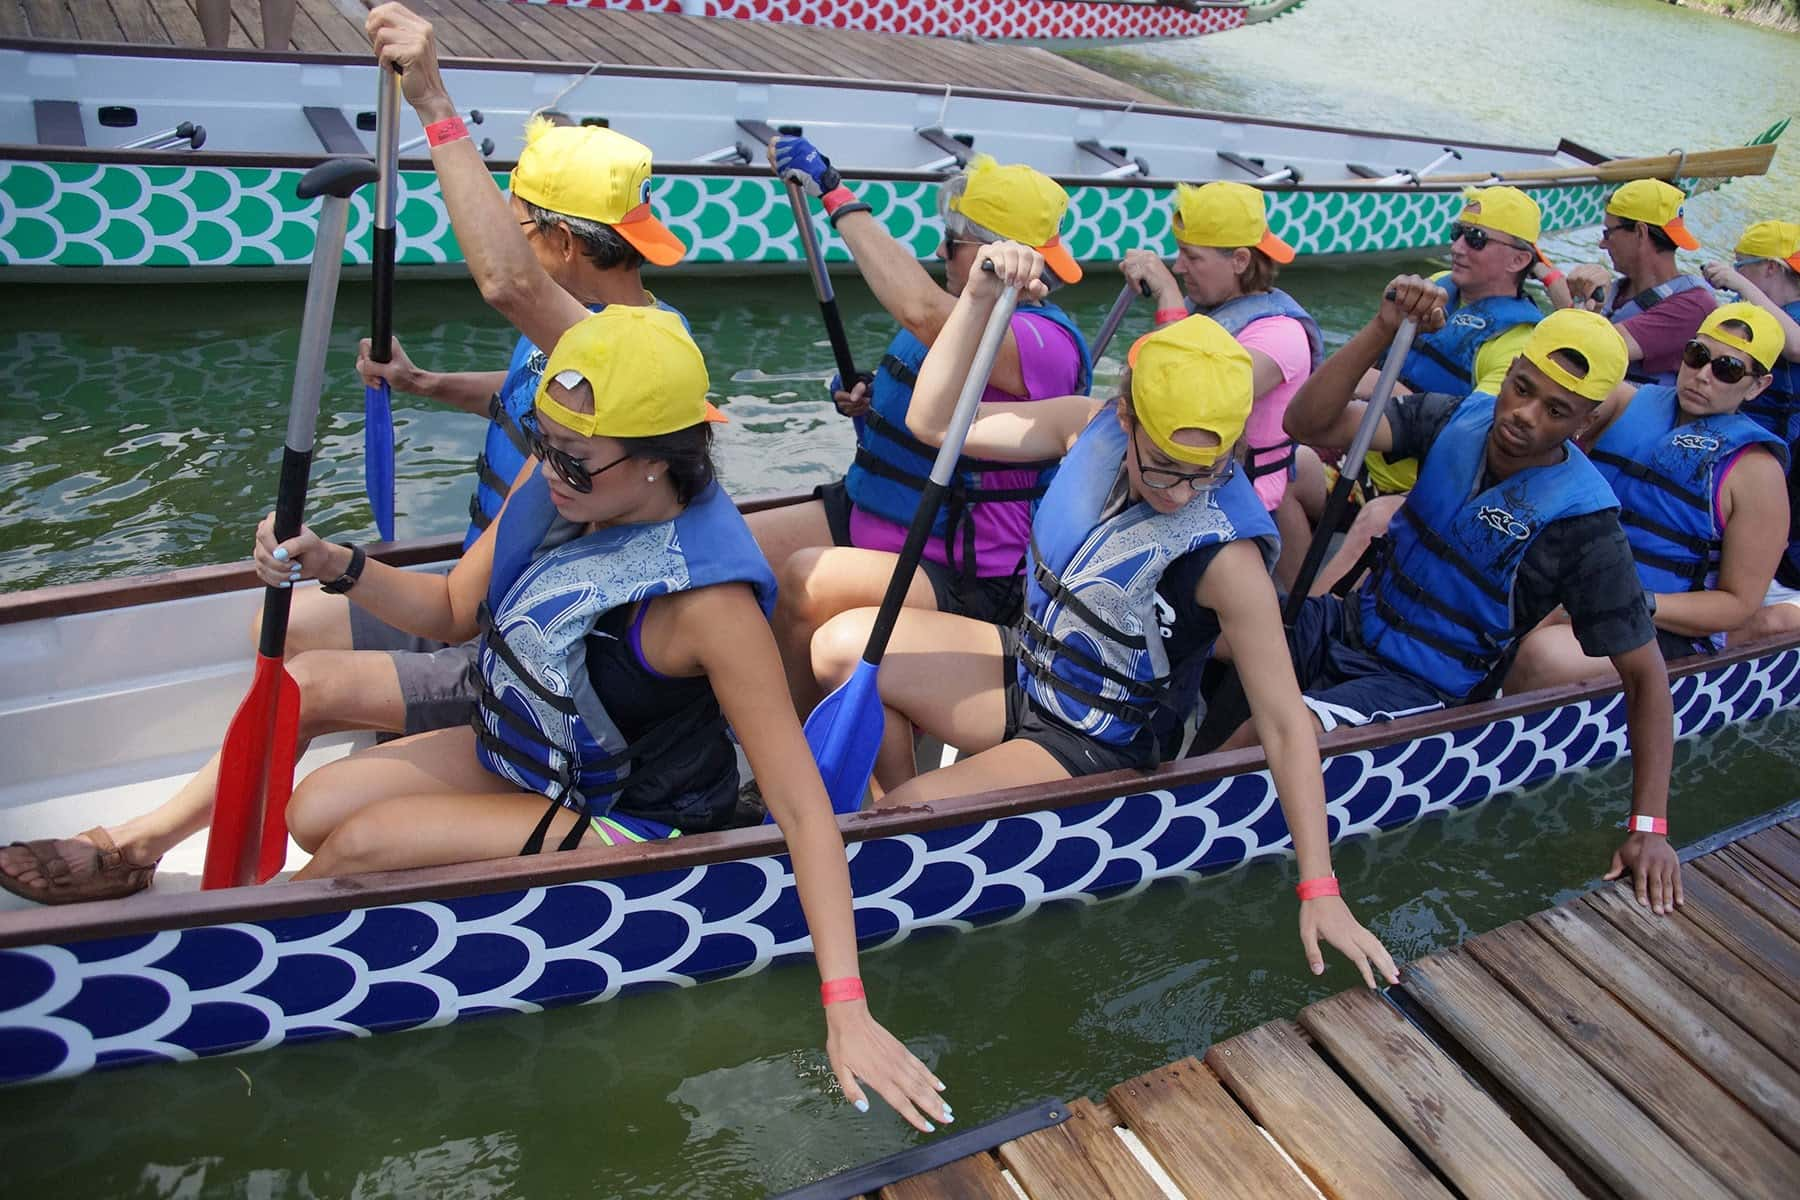 080116_dragonboat_album_01_06